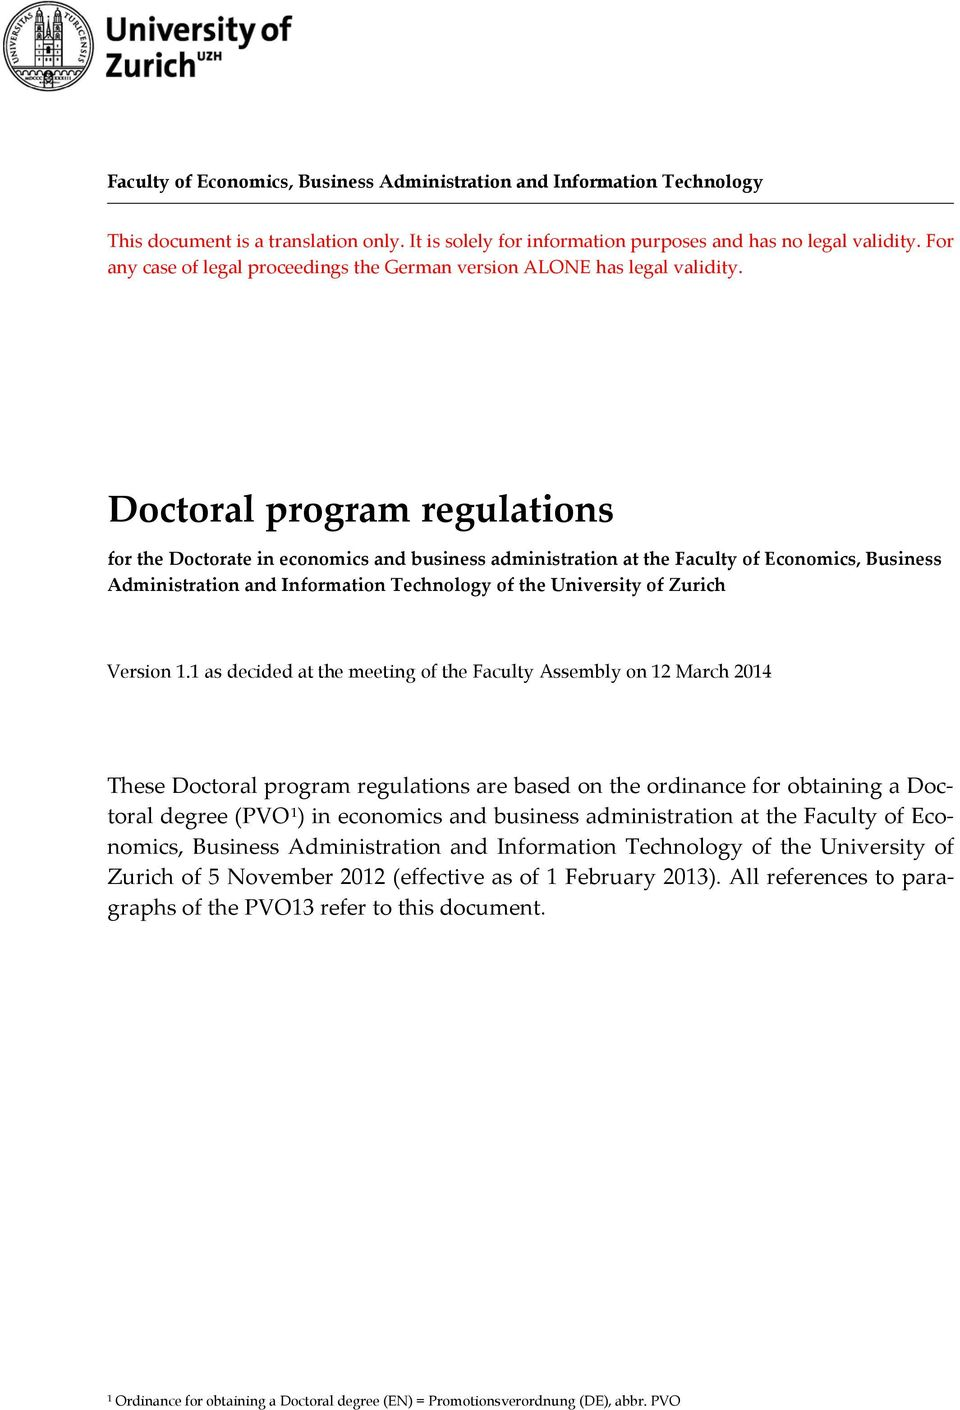 Doctoral program regulations for the Doctorate in economics and business administration at the Faculty of Economics, Business Administration and Information Technology of the University of Zurich